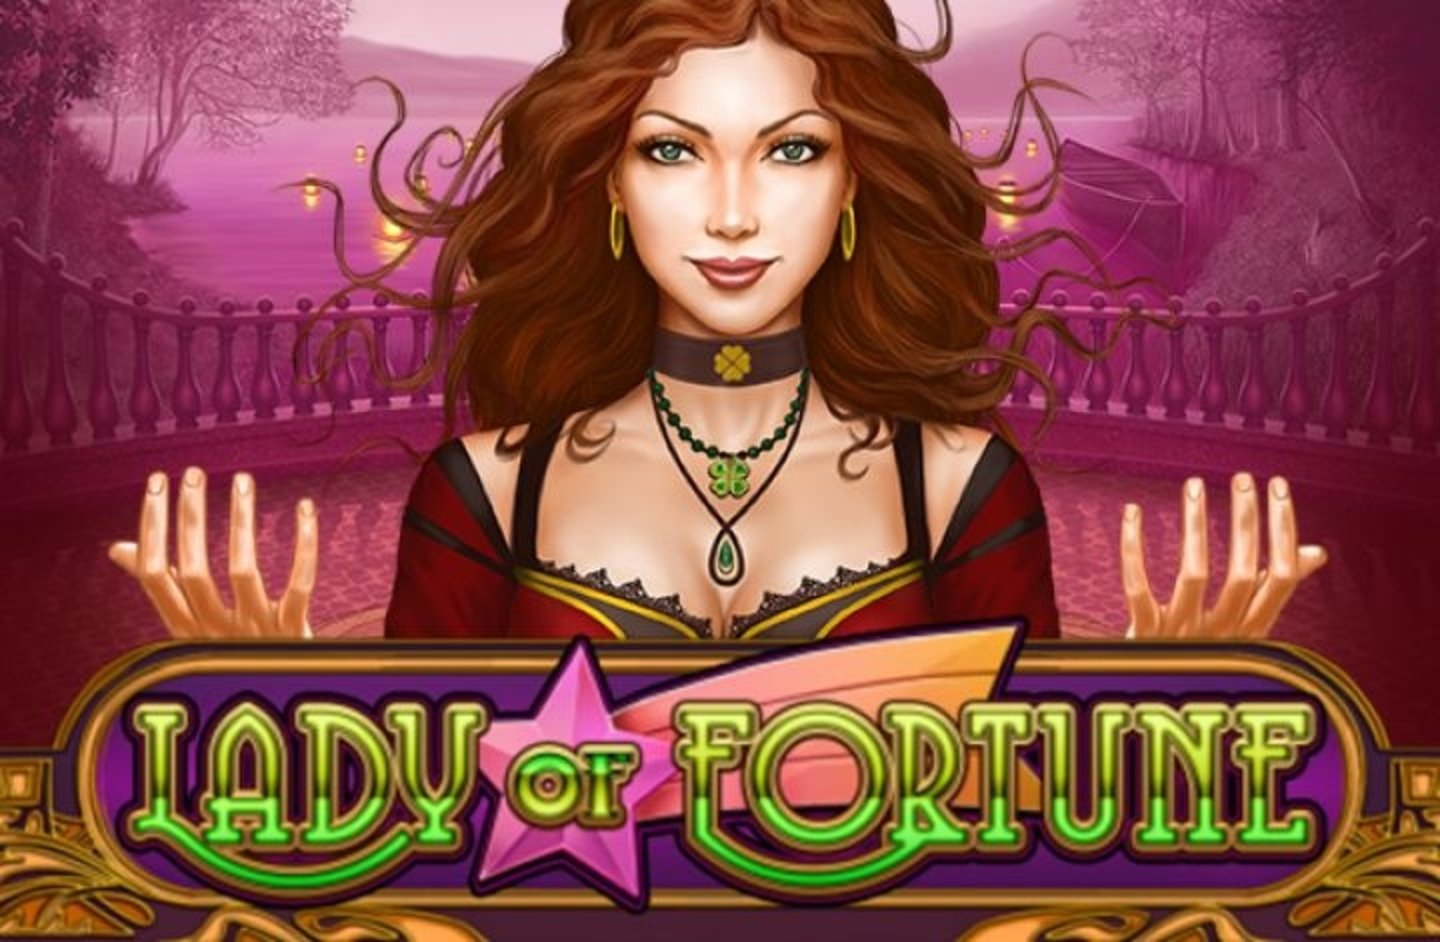 Lady of Fortune Online Slot Demo Game by Playn GO